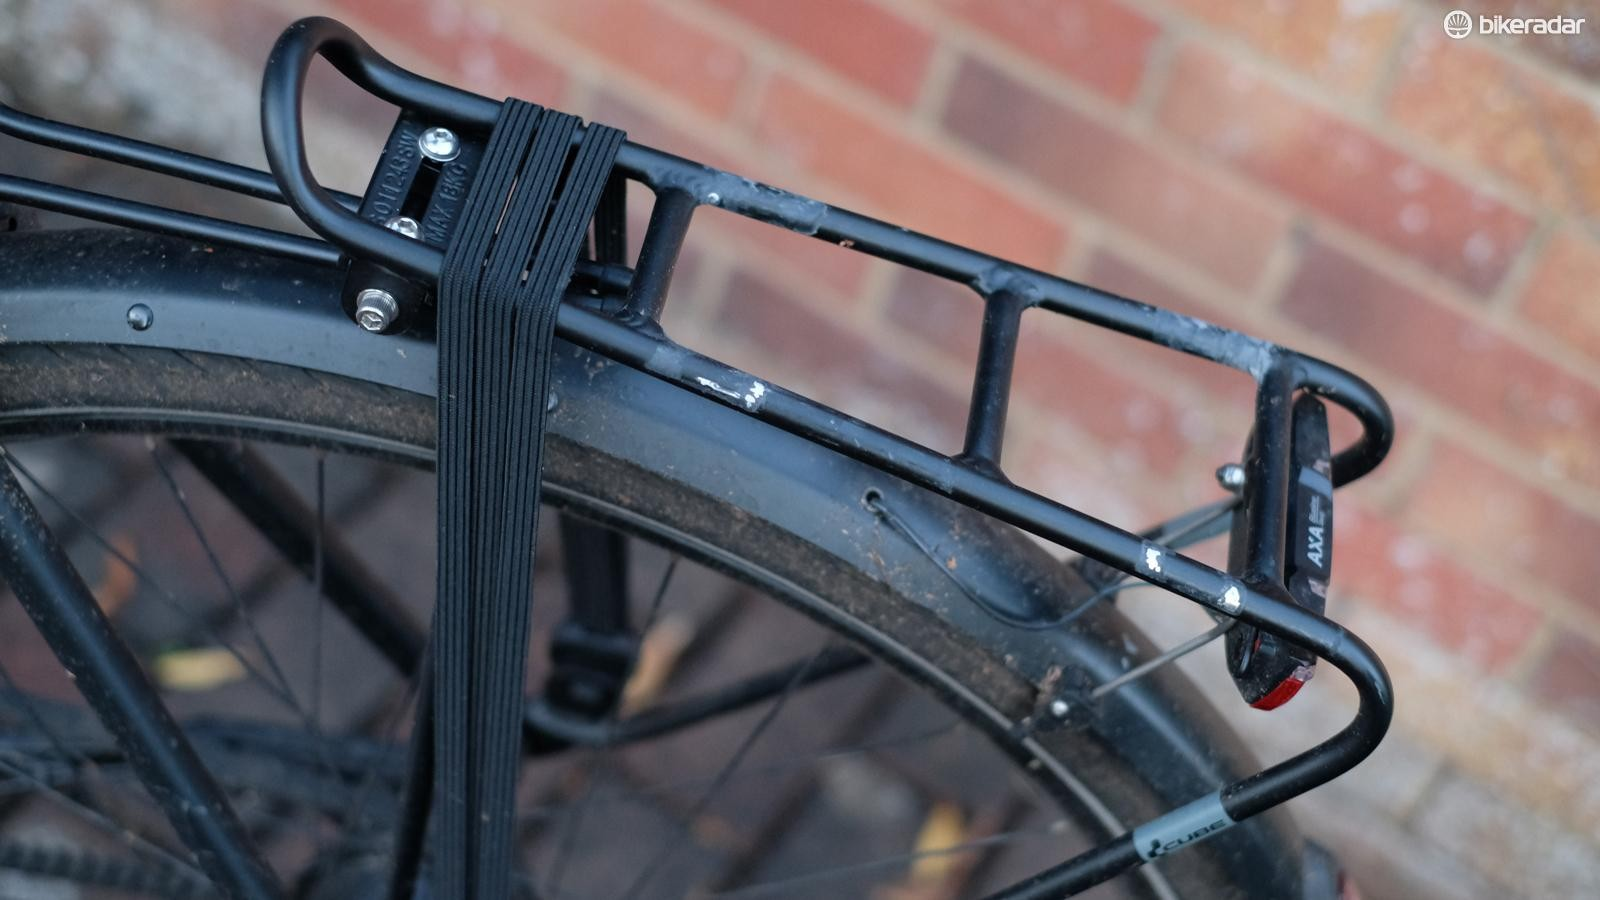 The rear light is also powered by a front dynamo hub, its position is perhaps a little low